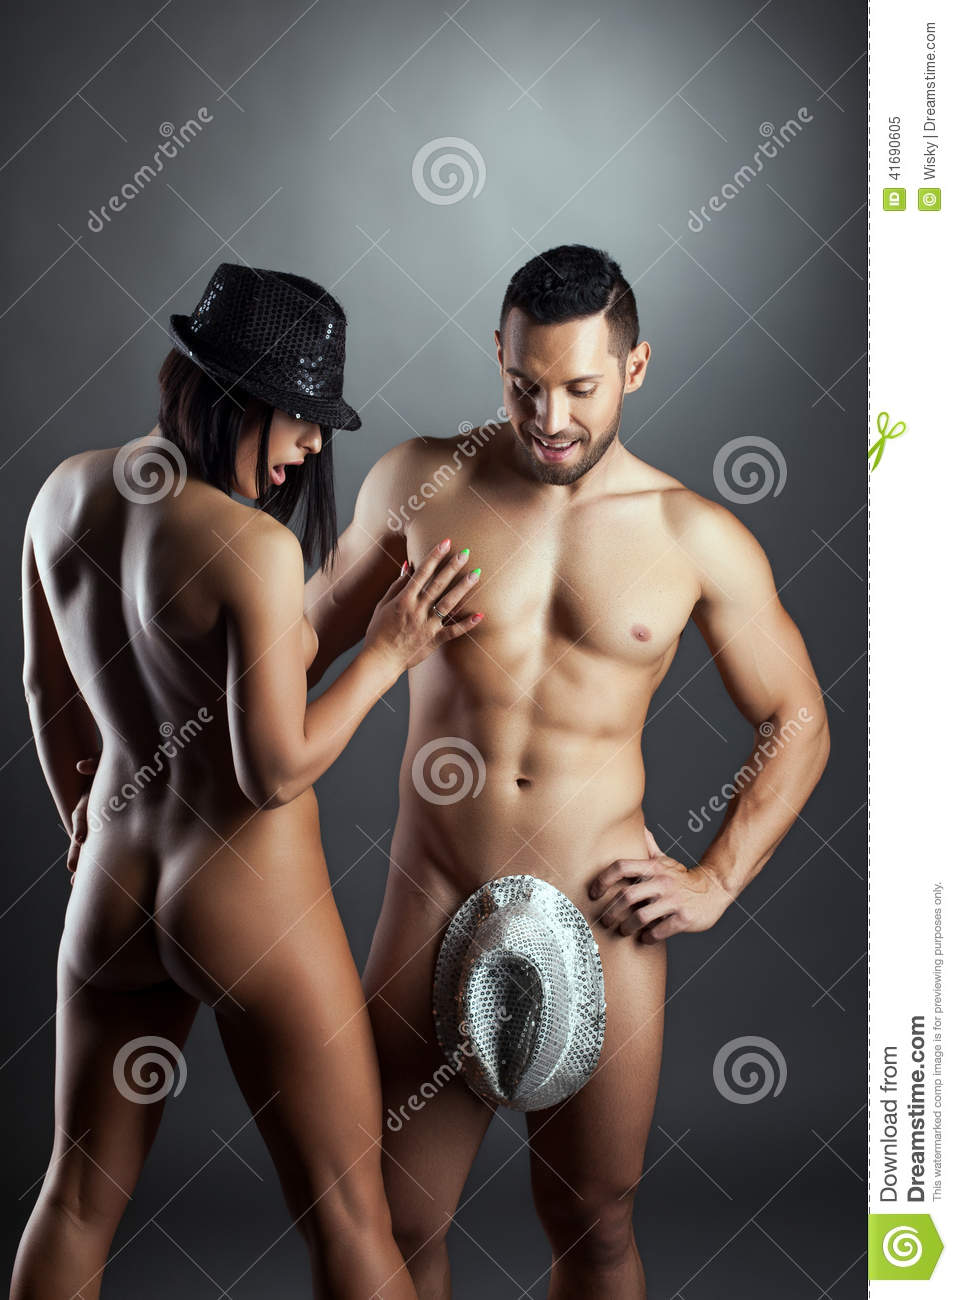 nude man and woman sex